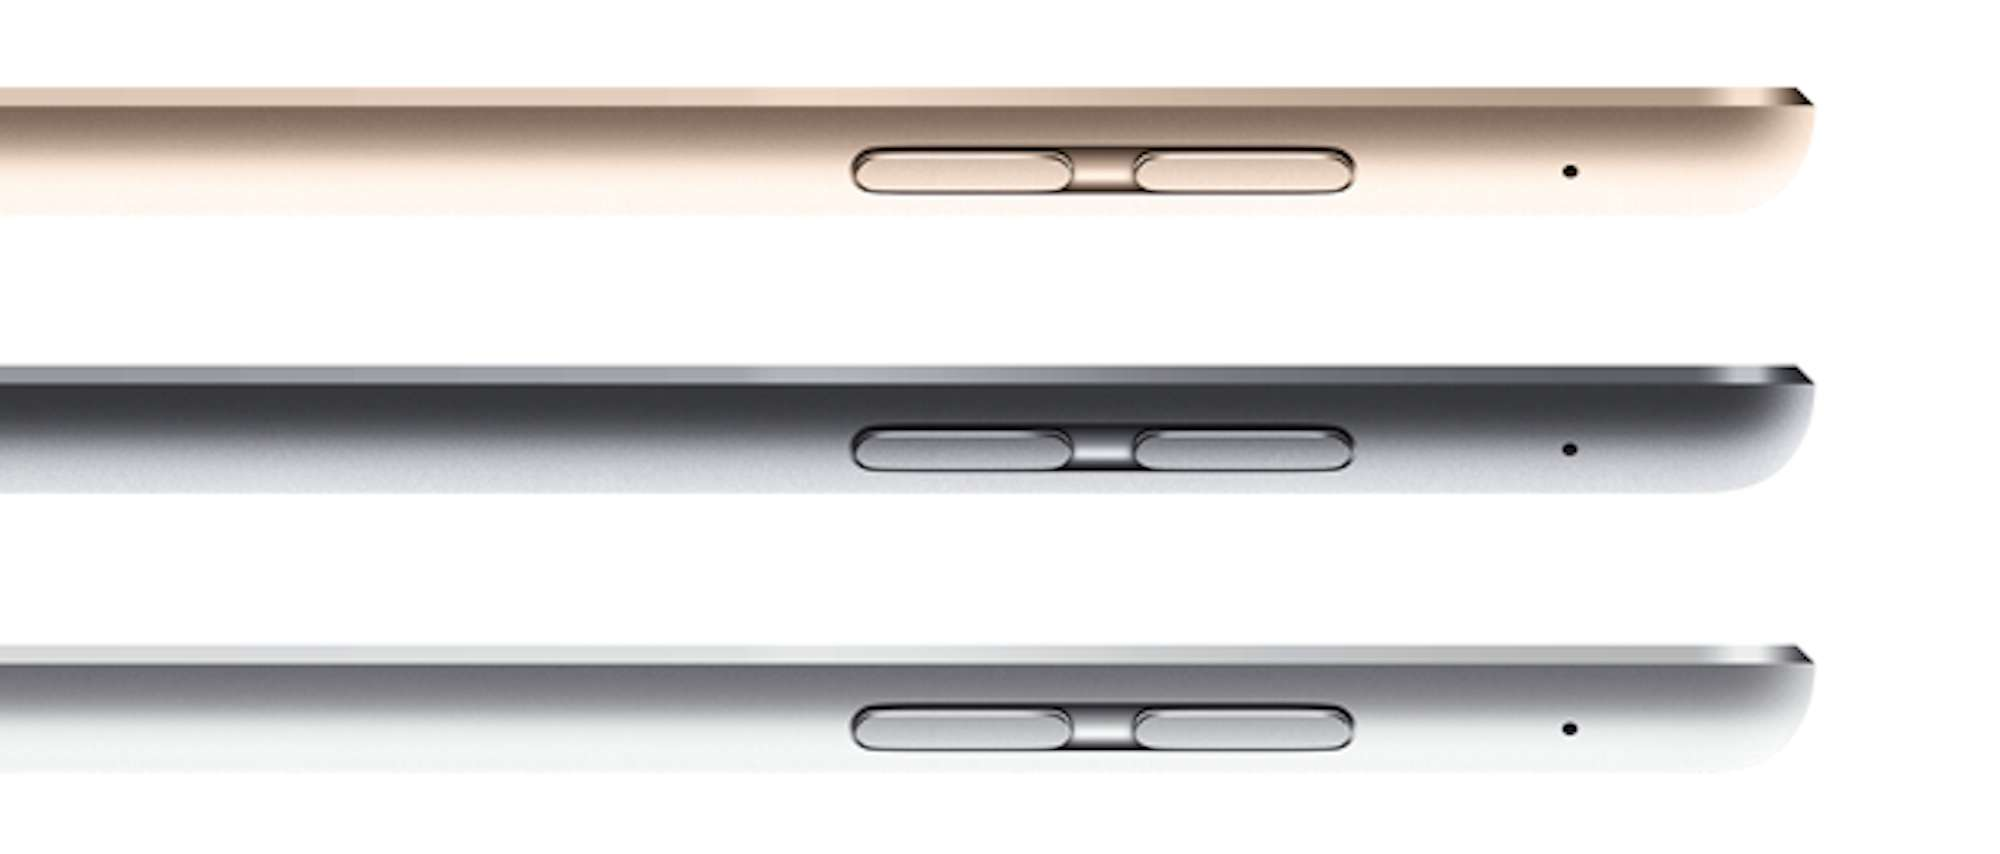 ipad-air-2-colores-oro-plata-negro-apple-touch-id